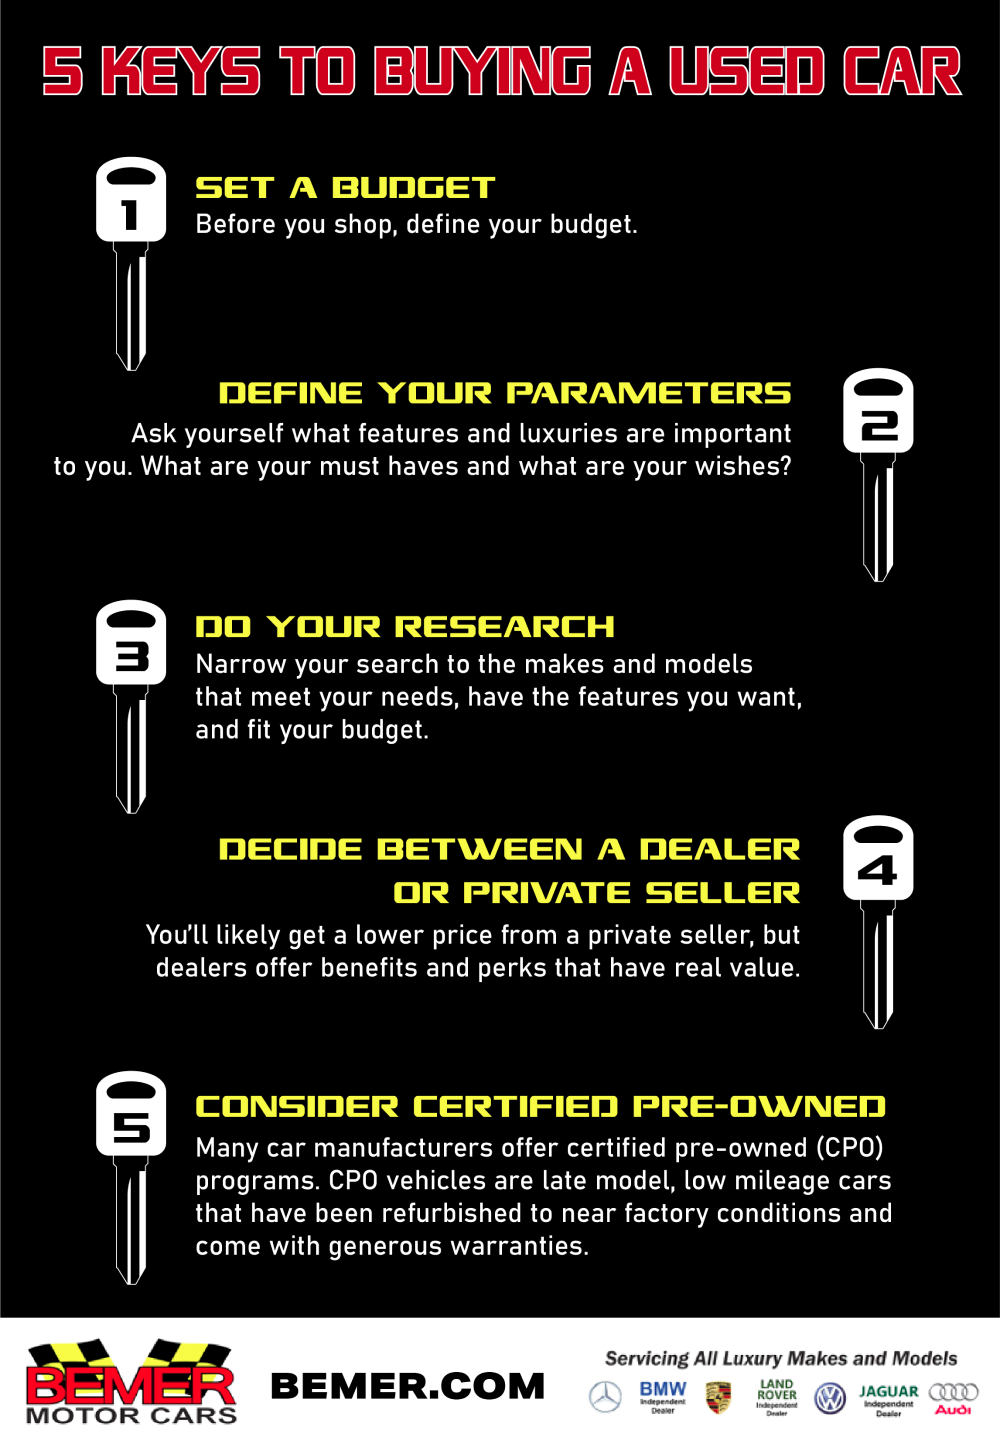 5 Keys to Buying a Used Car